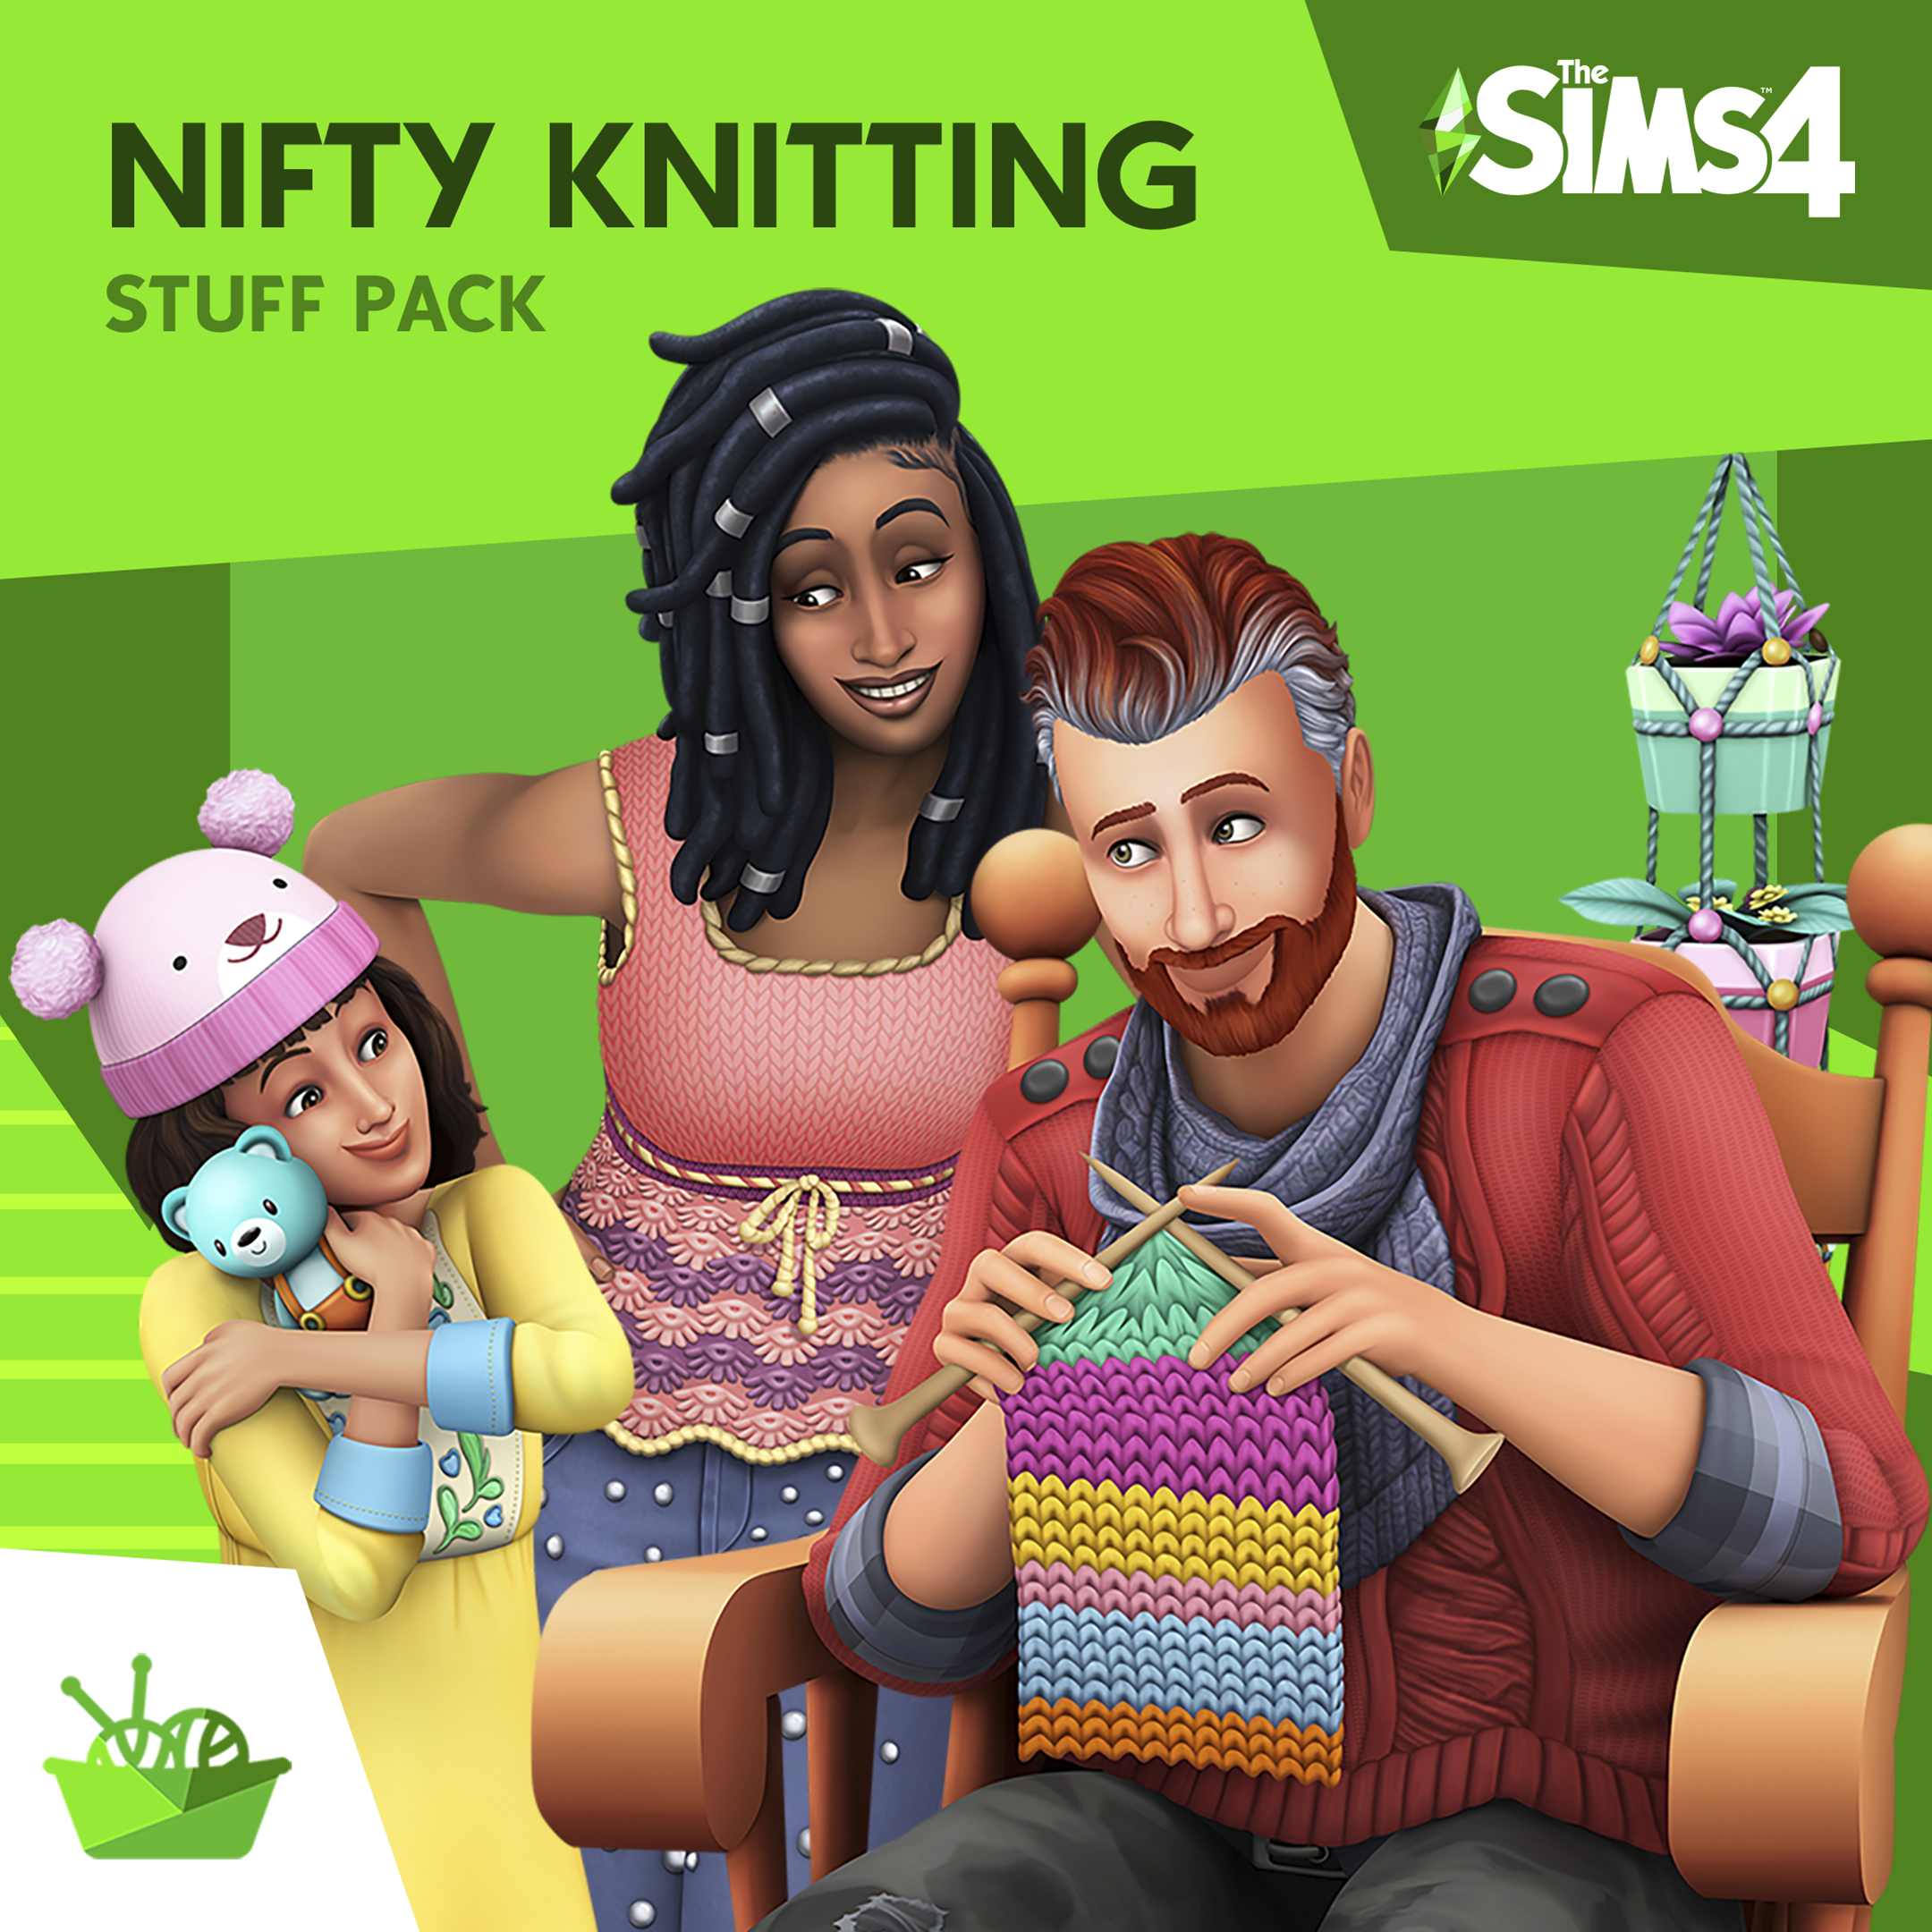 Nifty Knitting Stuff Pack